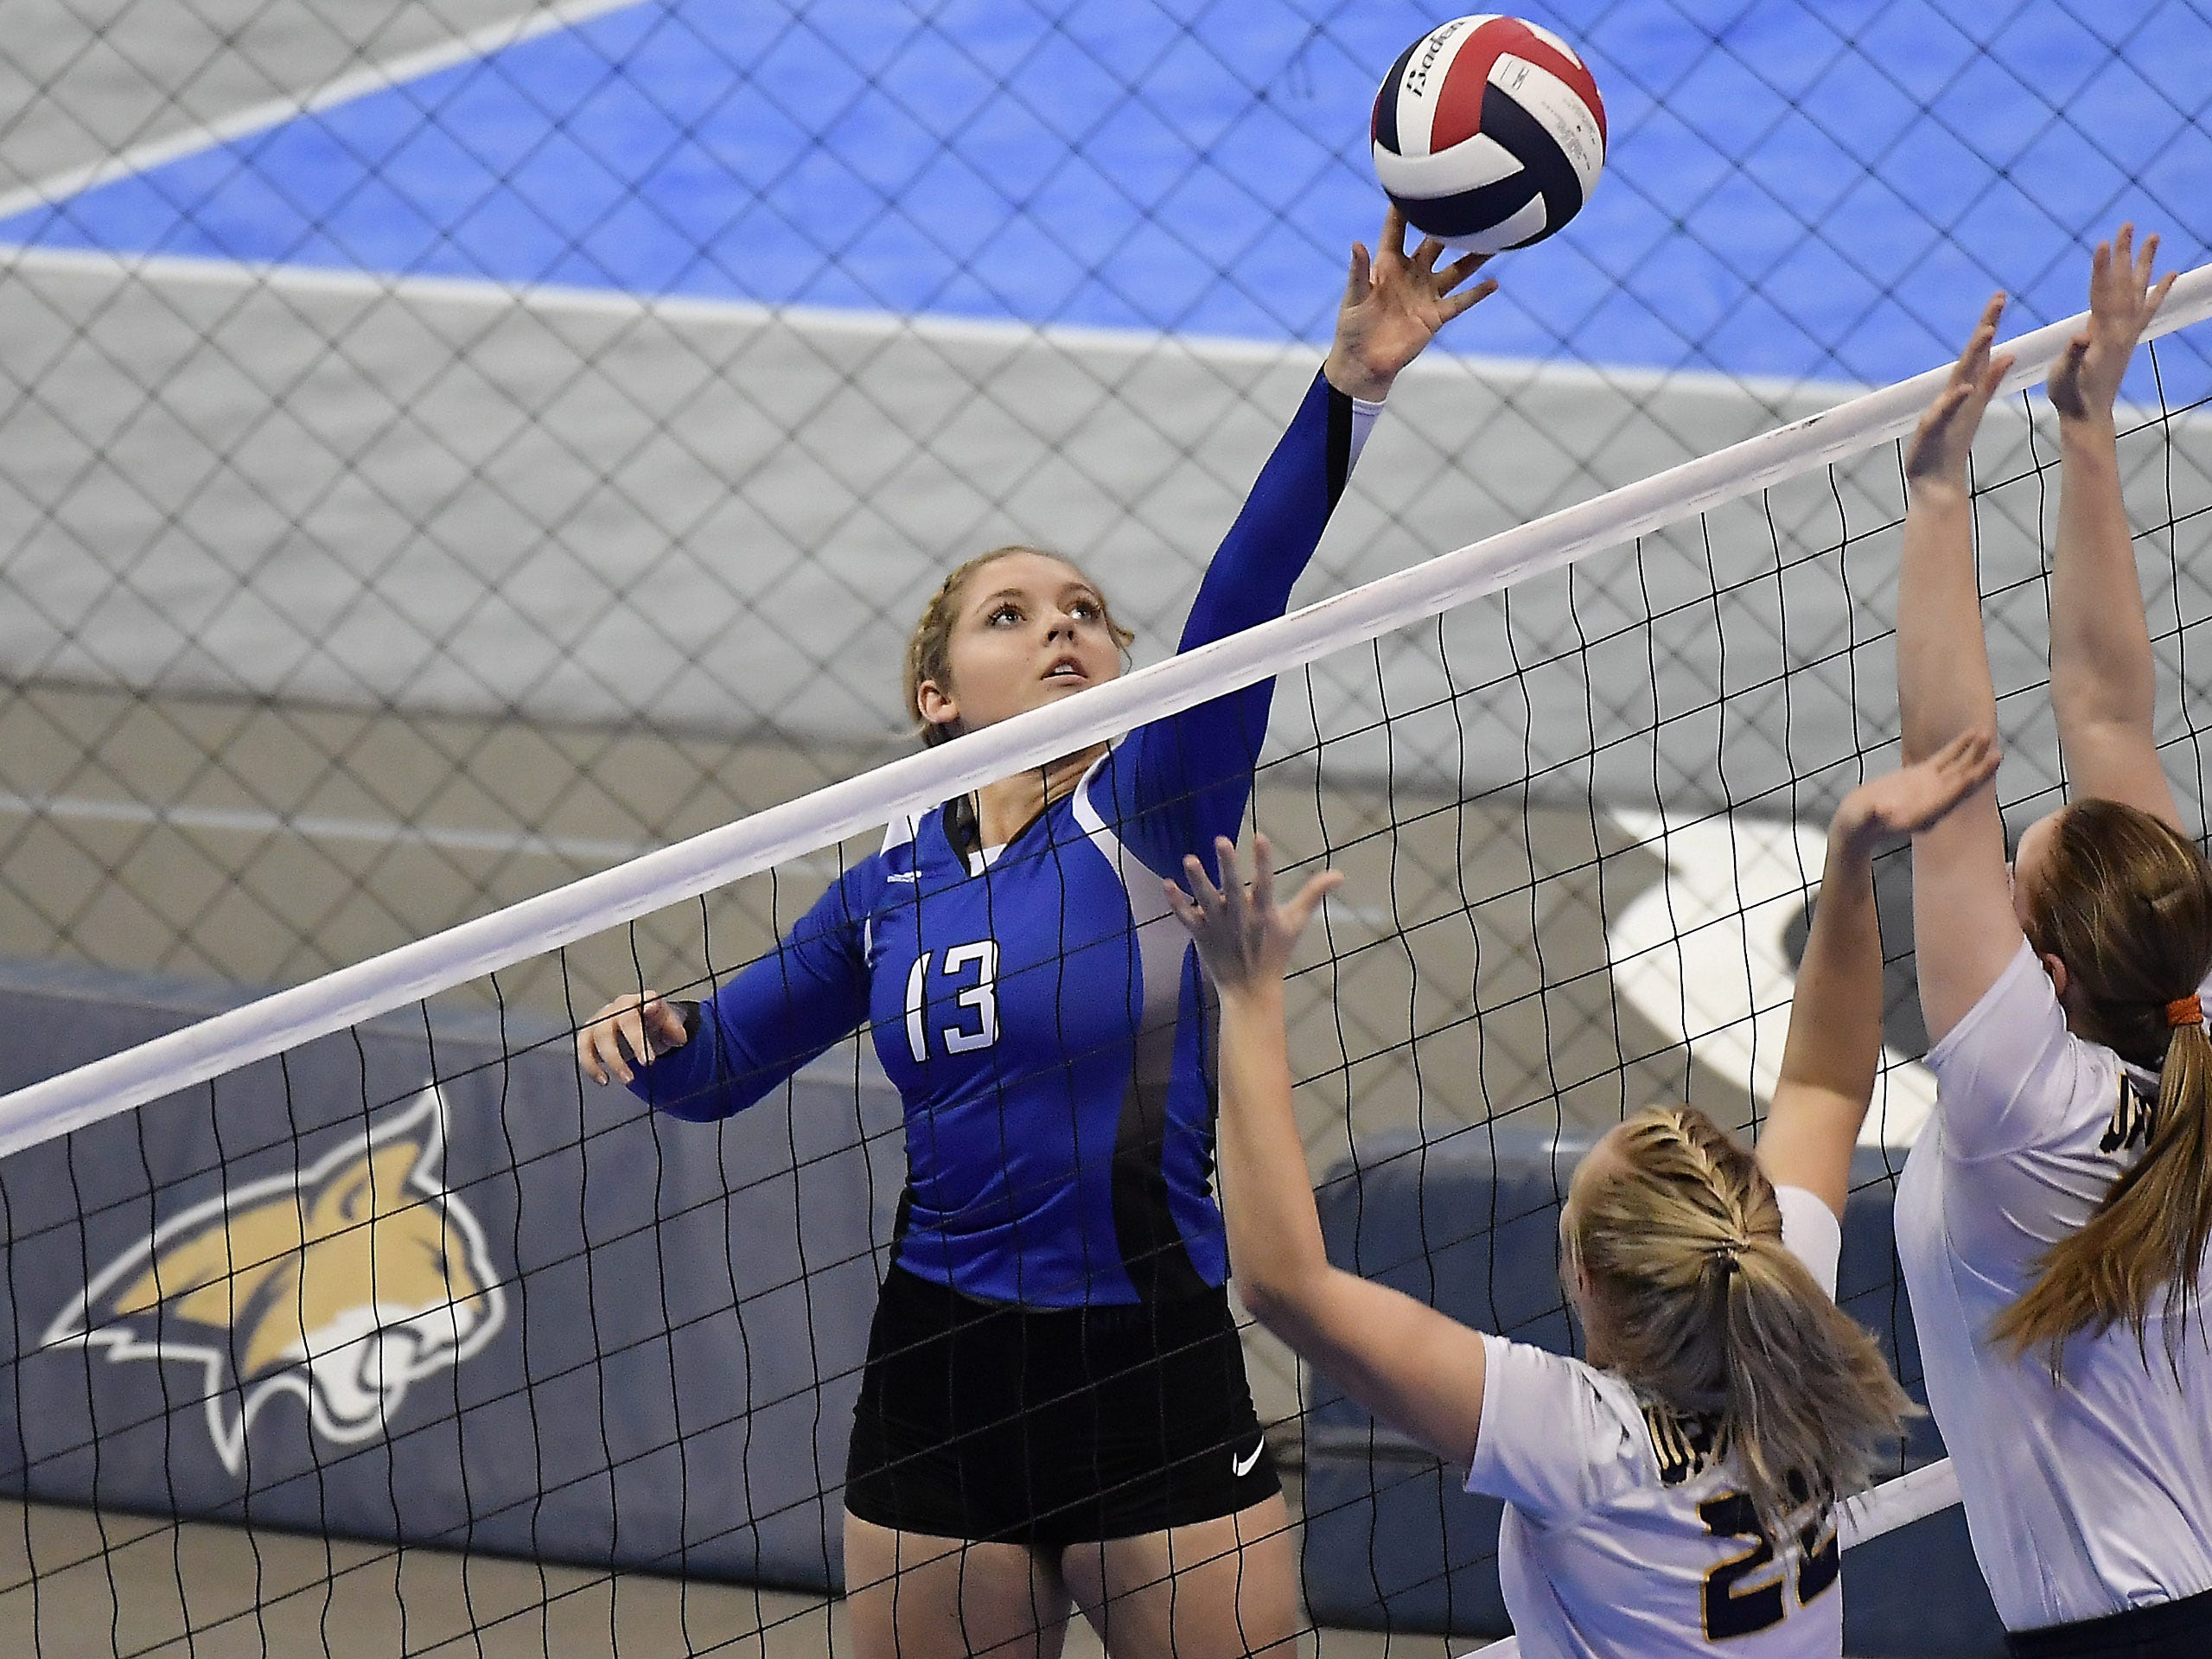 Fairfield's Taylor Simmons tips the ball against Deer Lodge at the All-Class State Volleyball Tournament at the Brick Breeden Fieldhouse in Bozeman.